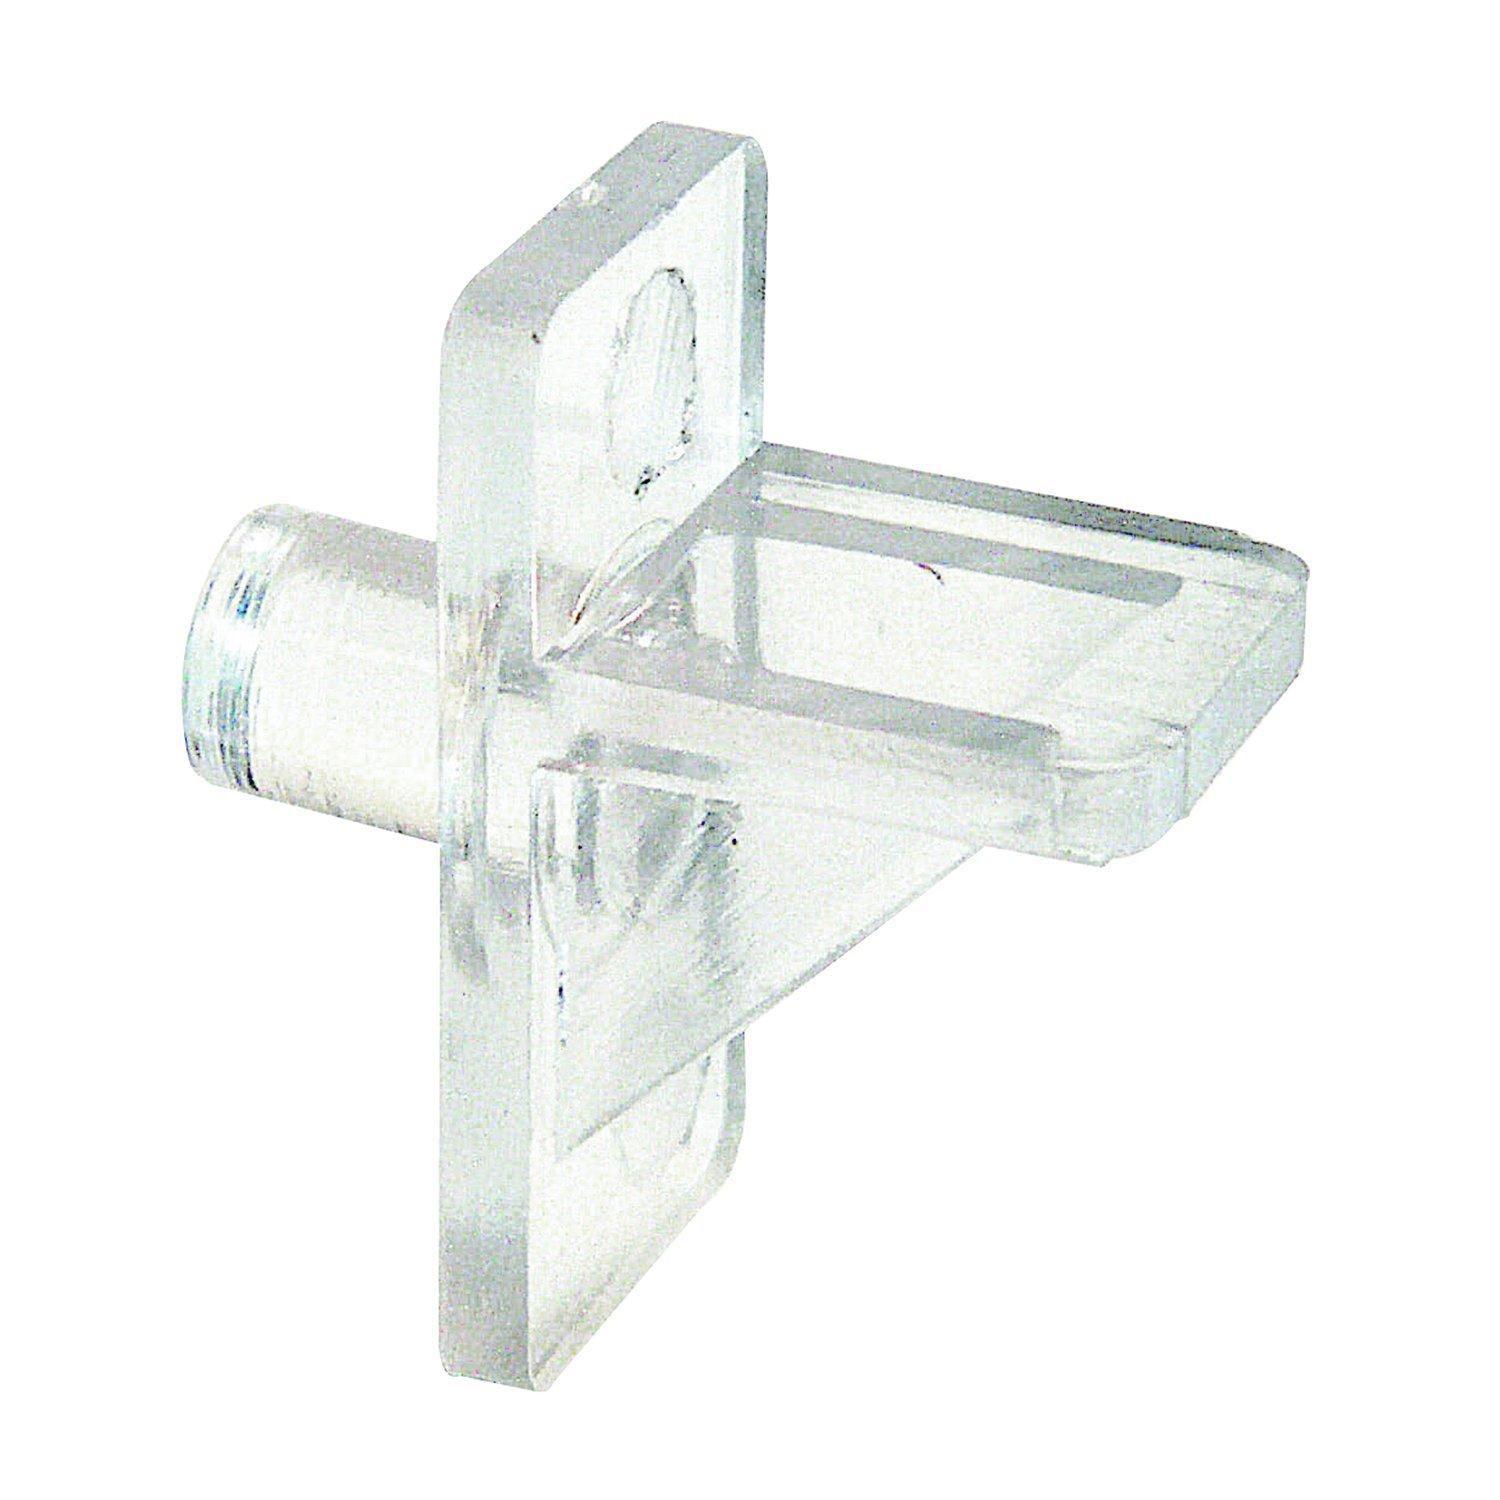 Plastic Pack Of 8 1//4 In Diameter Clear Prime-Line Products U 10144 Shelf Support Pegs ,